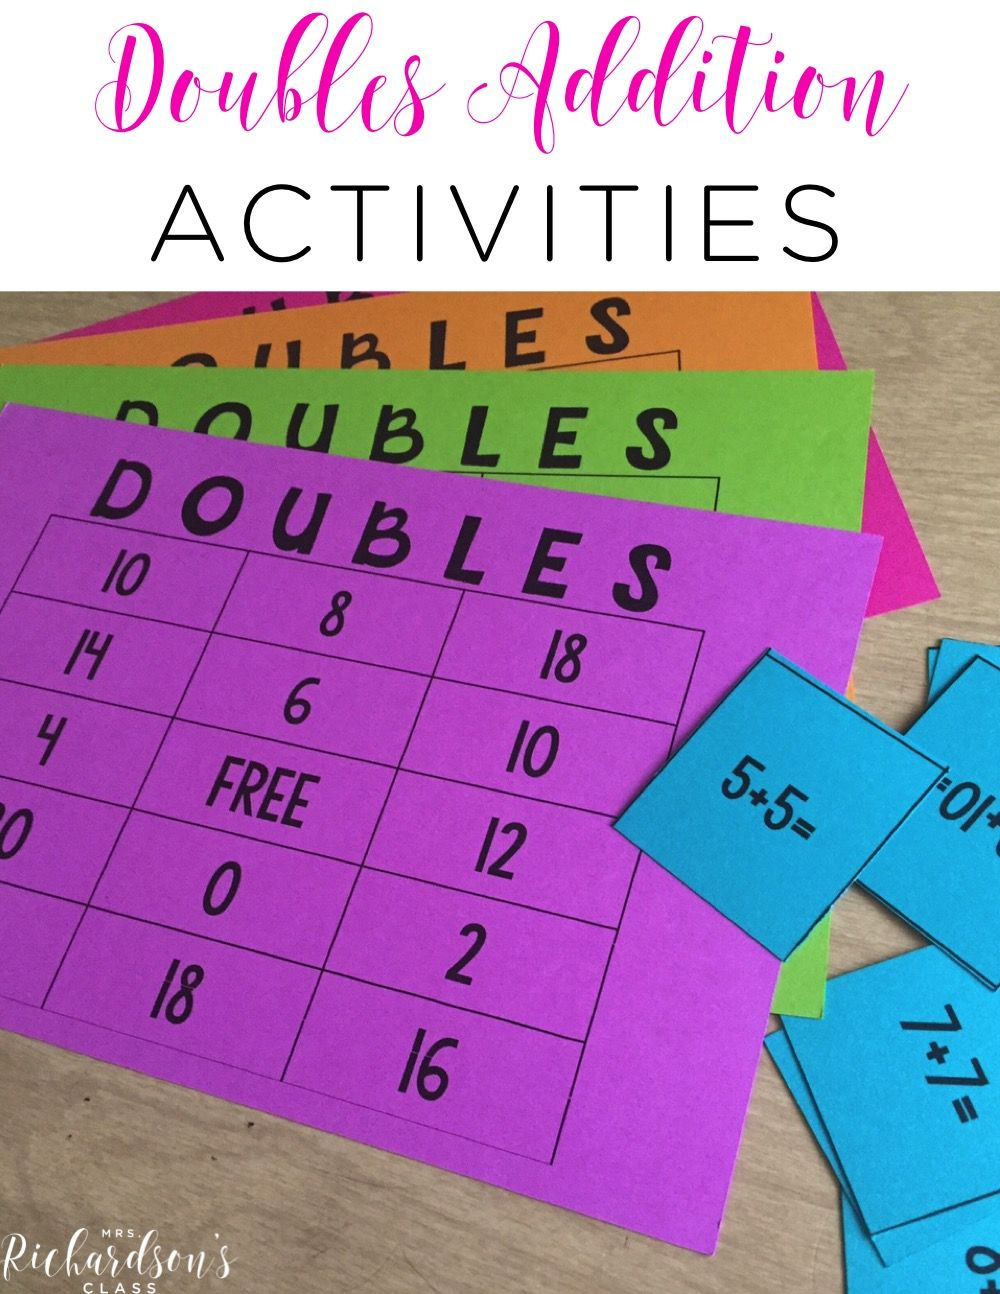 Doubles Addition Teaching Ideas That Are Great For First Graders I Love The Song That This Teacher Shared Too Math Addition Elementary Math Math Doubles Adding numbers using doubles